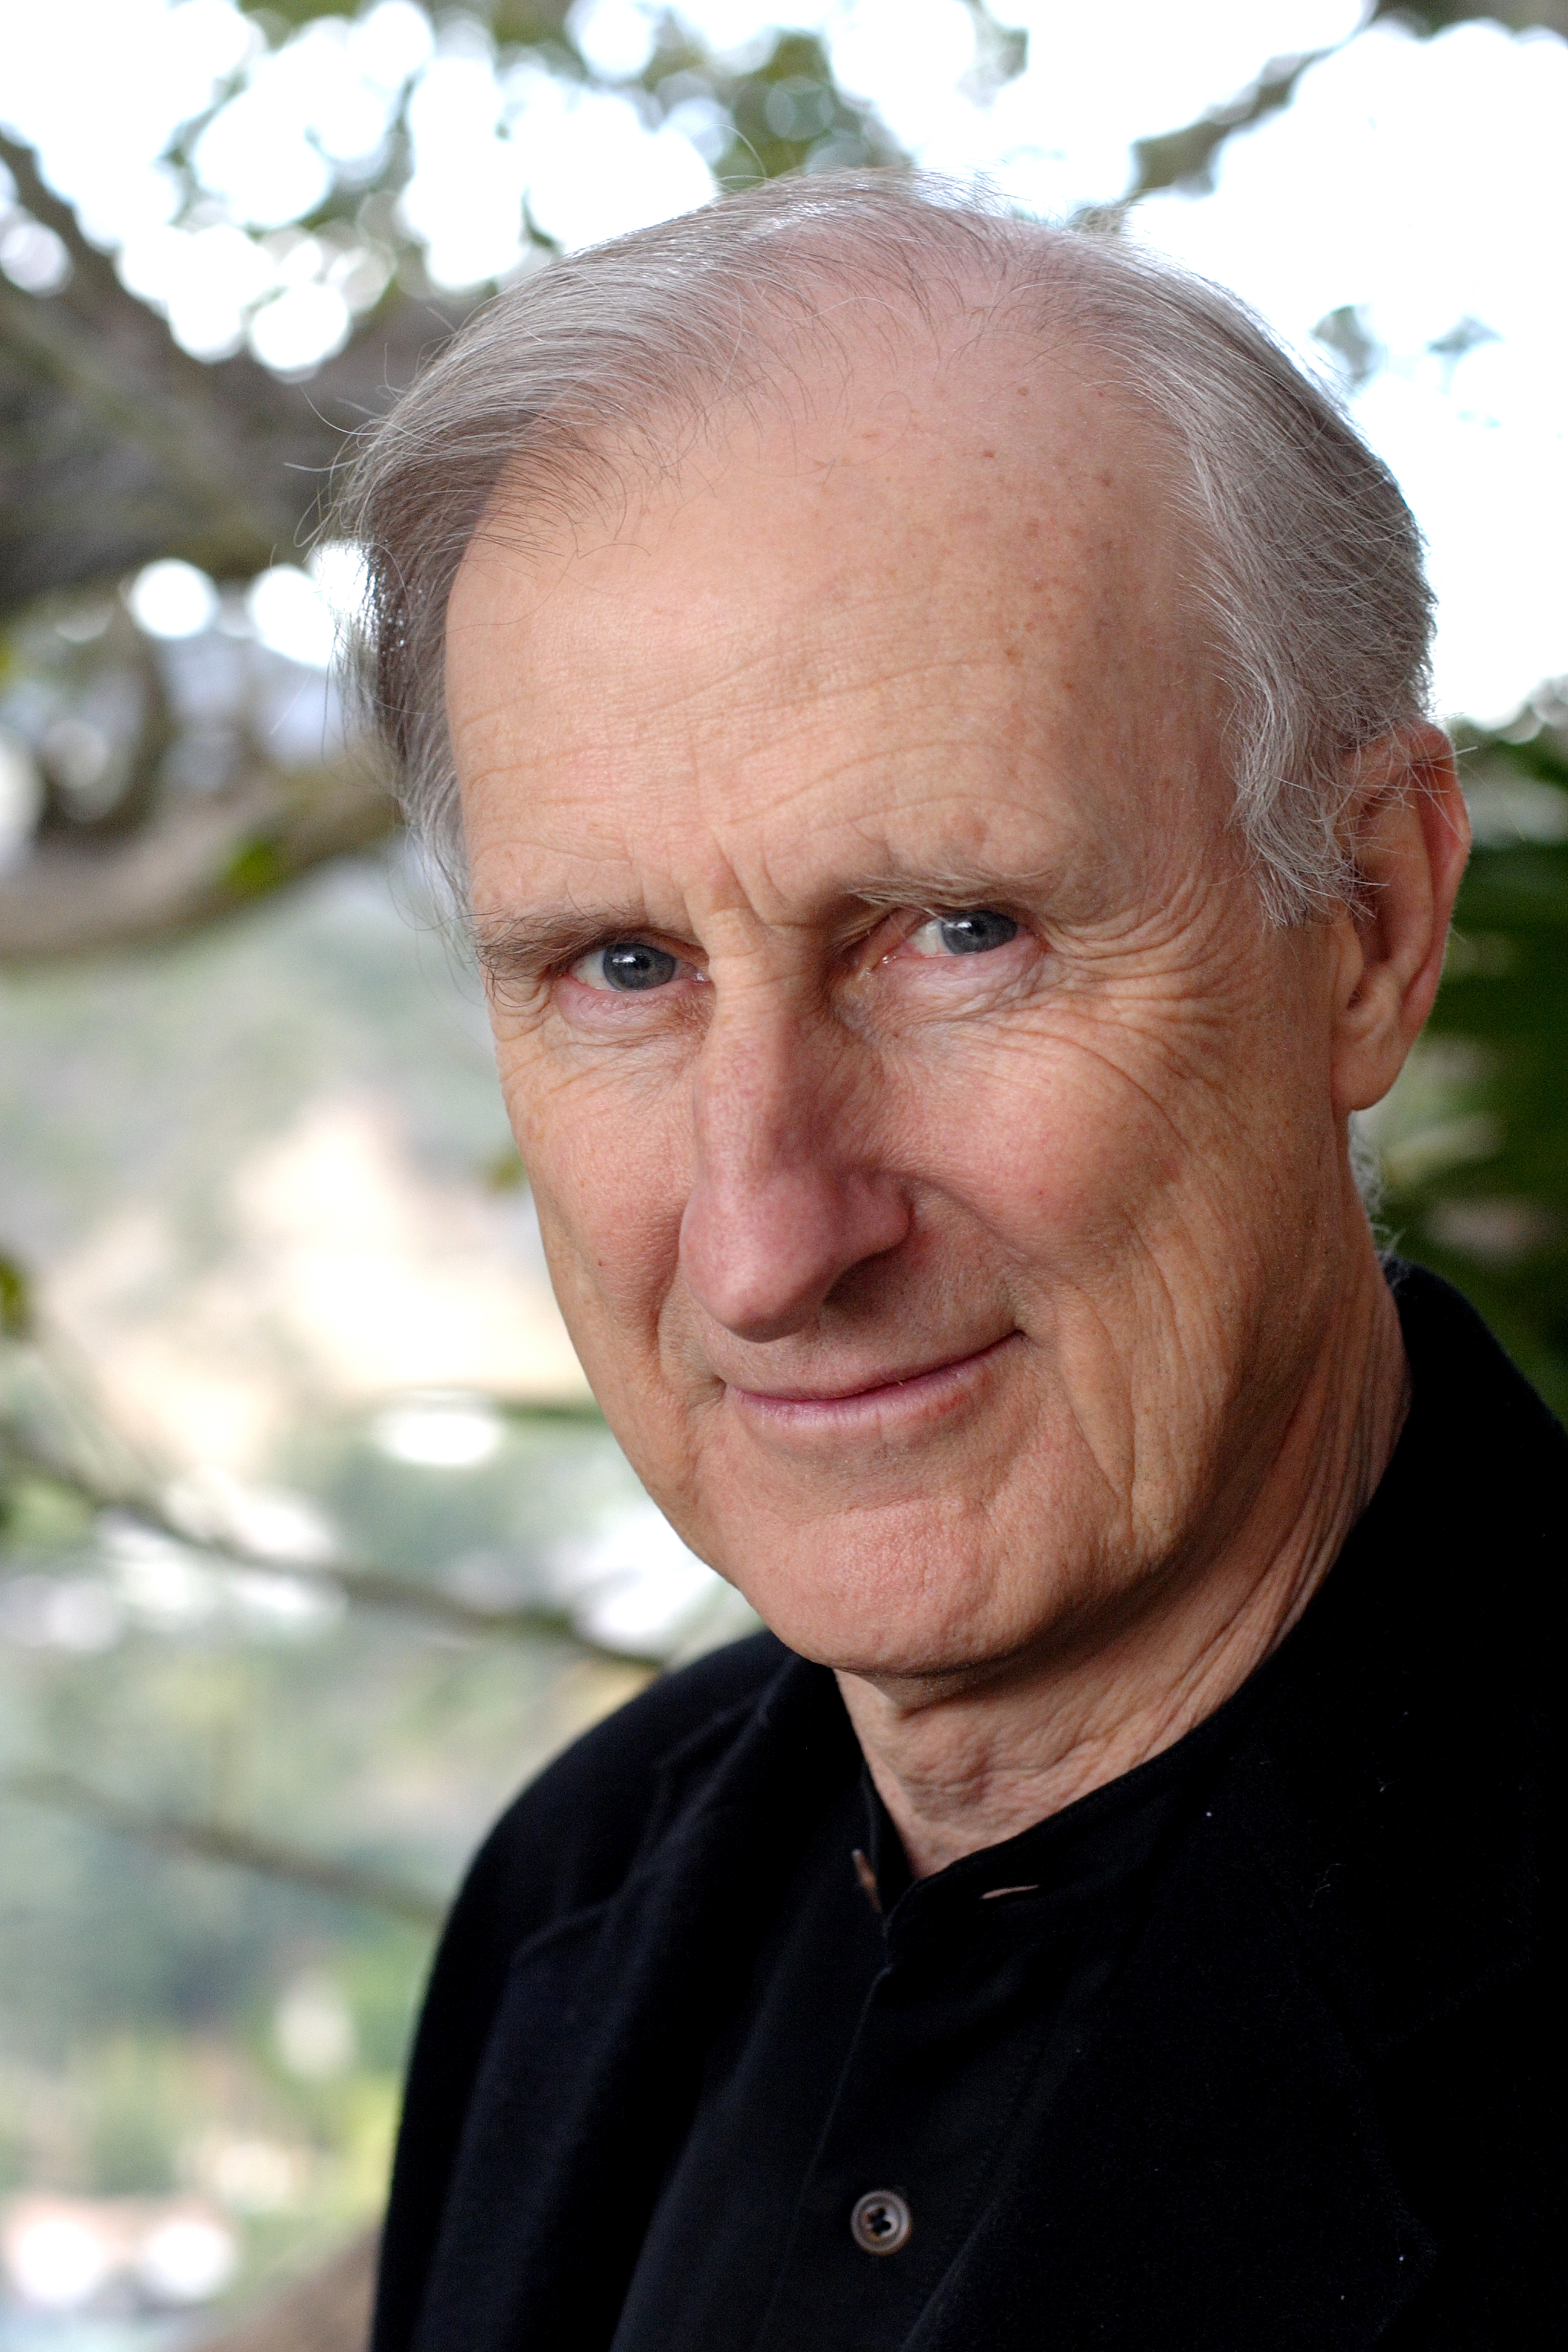 james cromwell real height